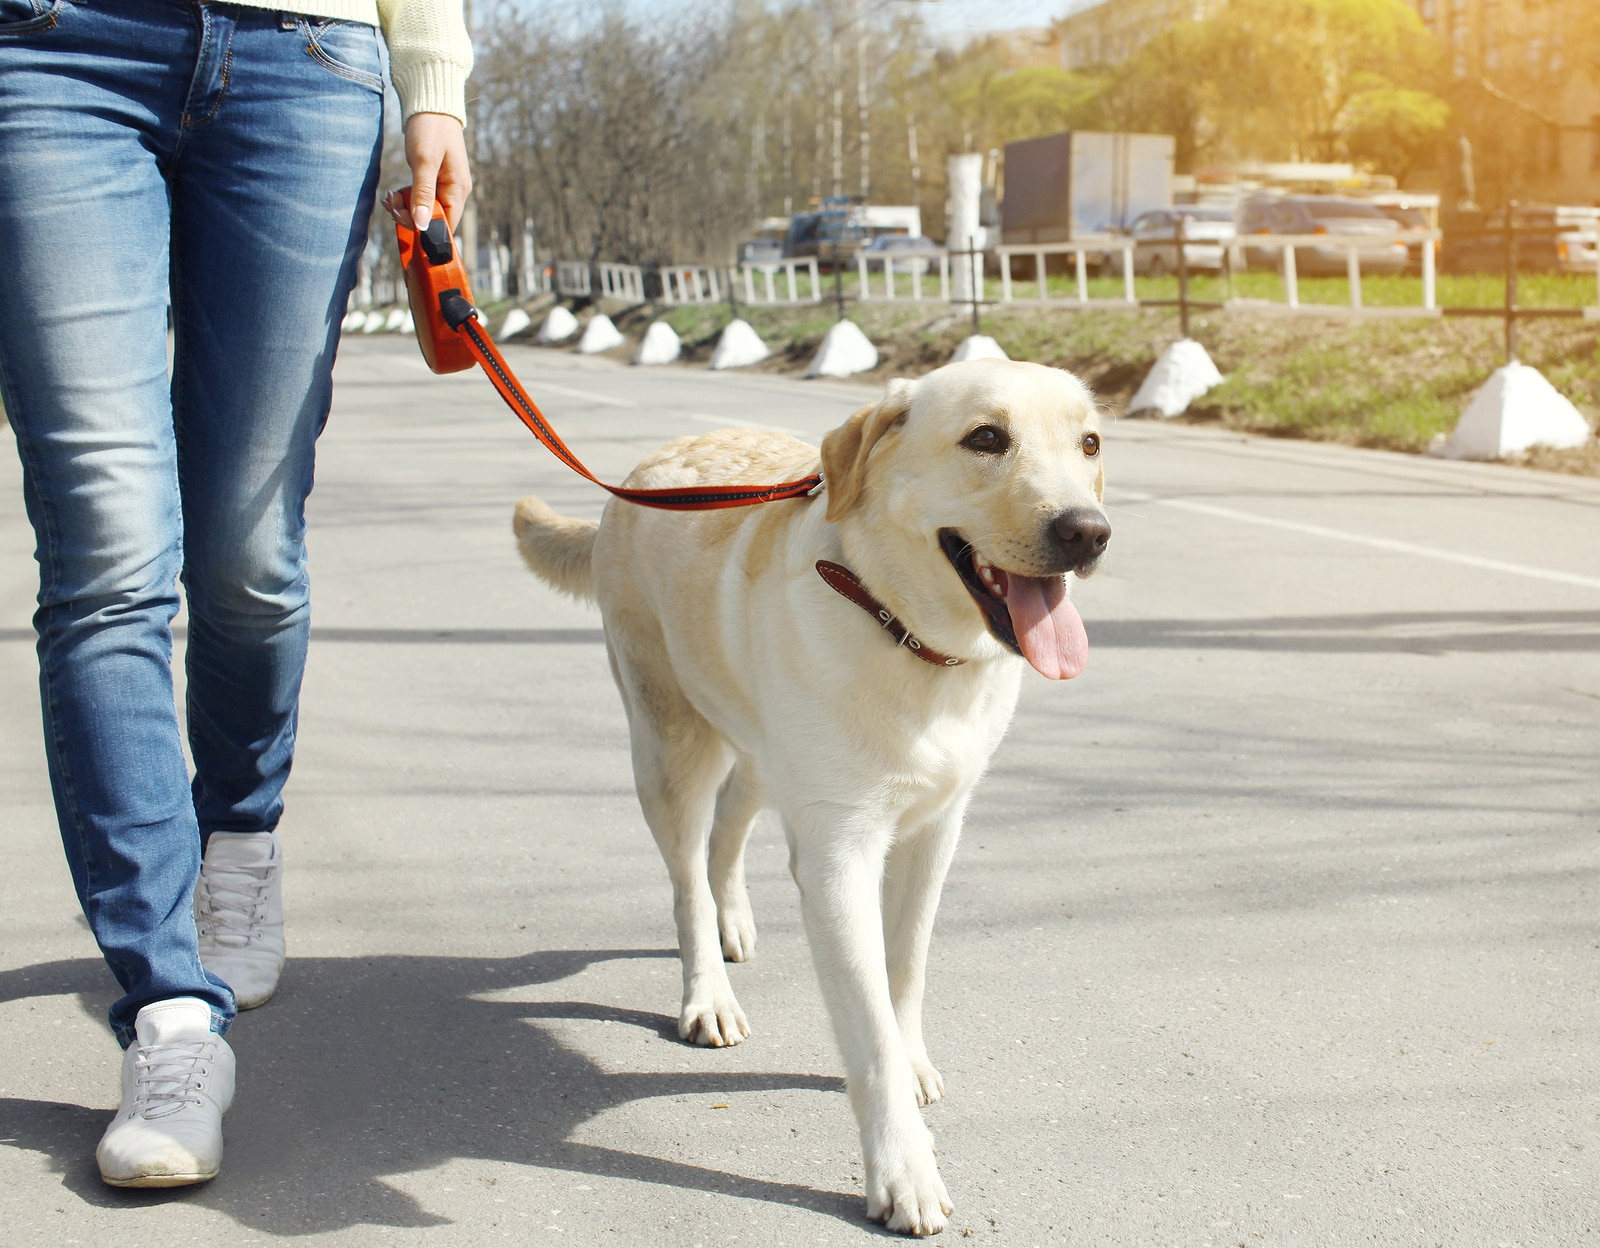 Owner and yellow labrador retriever dog walking in the city.